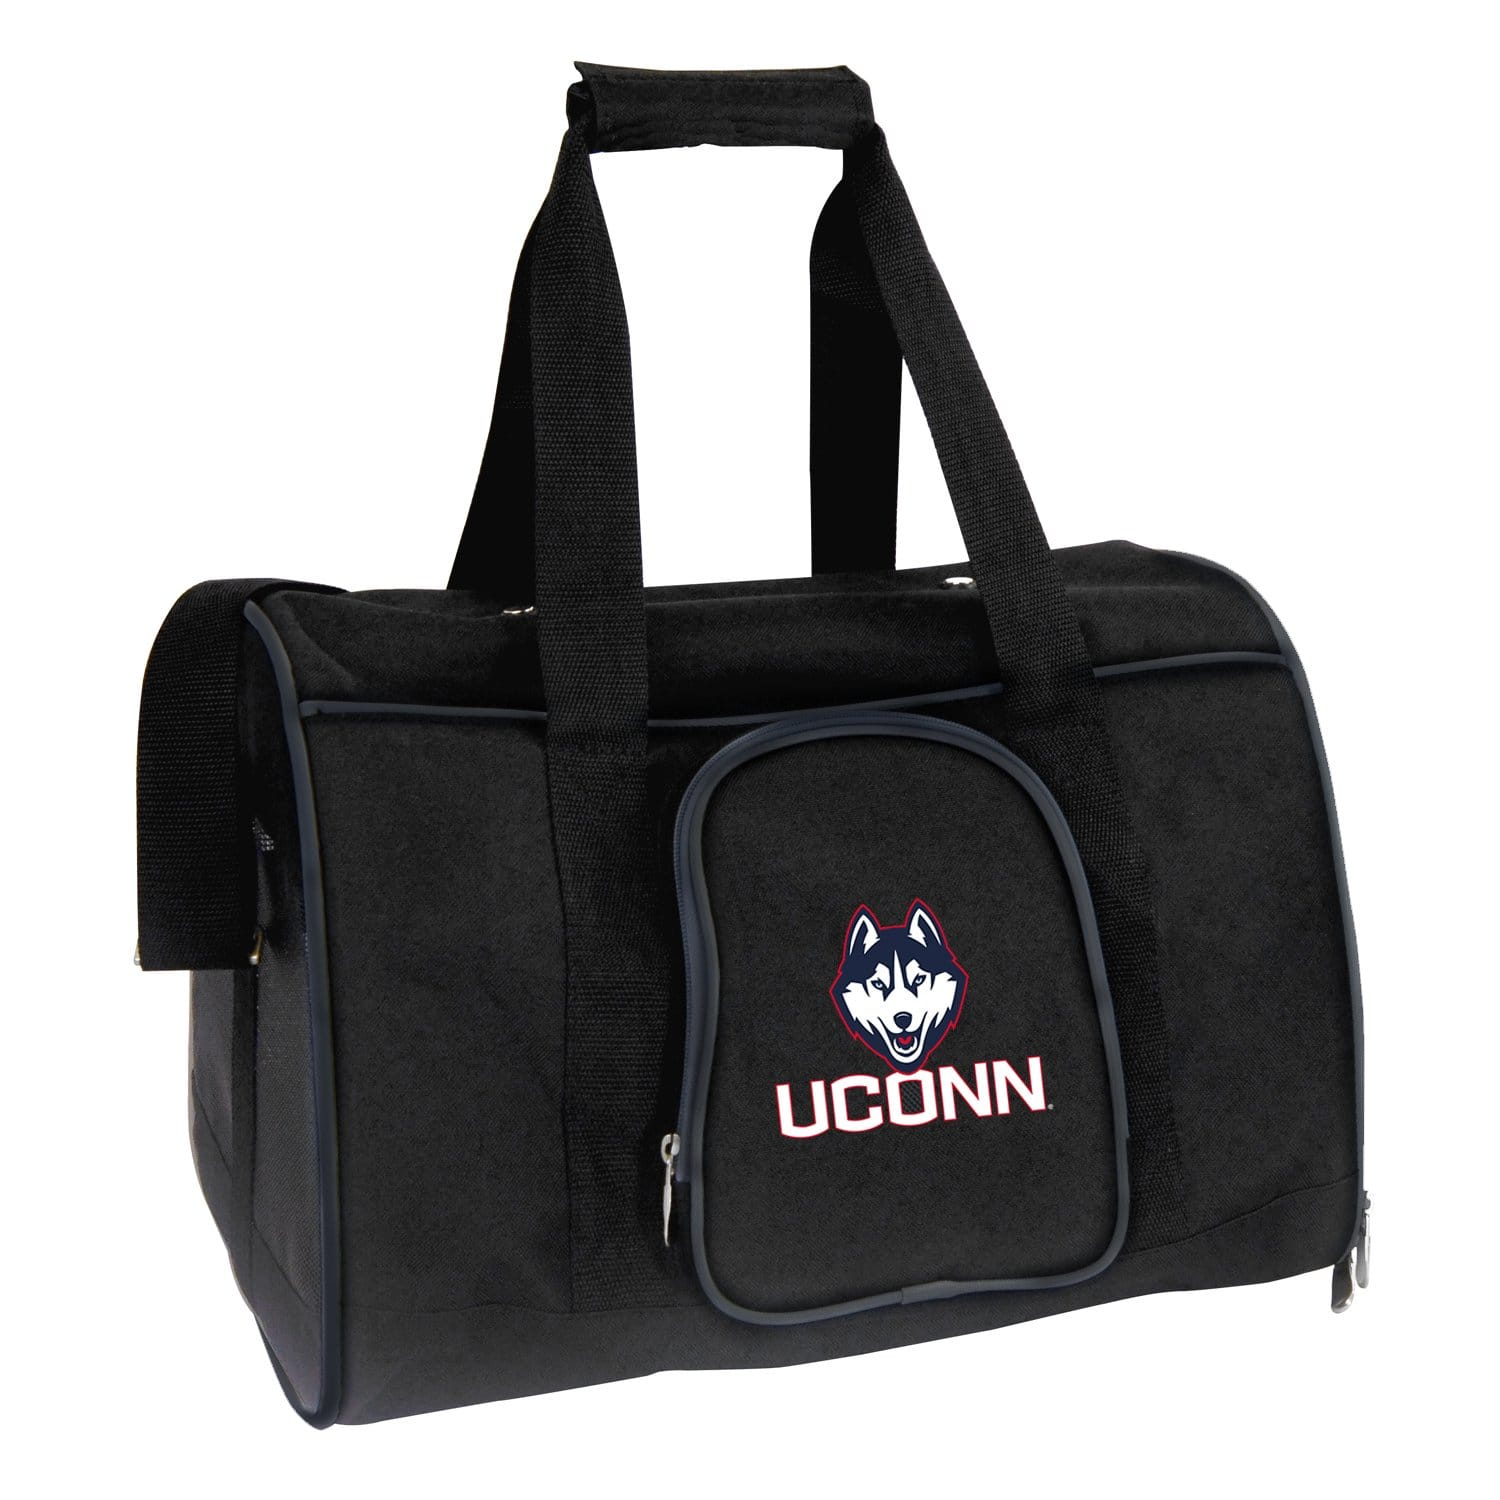 Denco NCAA Premium Pet Carriers for Cats or Small Dogs - Various Schools/Teams - Starting at $13.18 FS w/ Prime